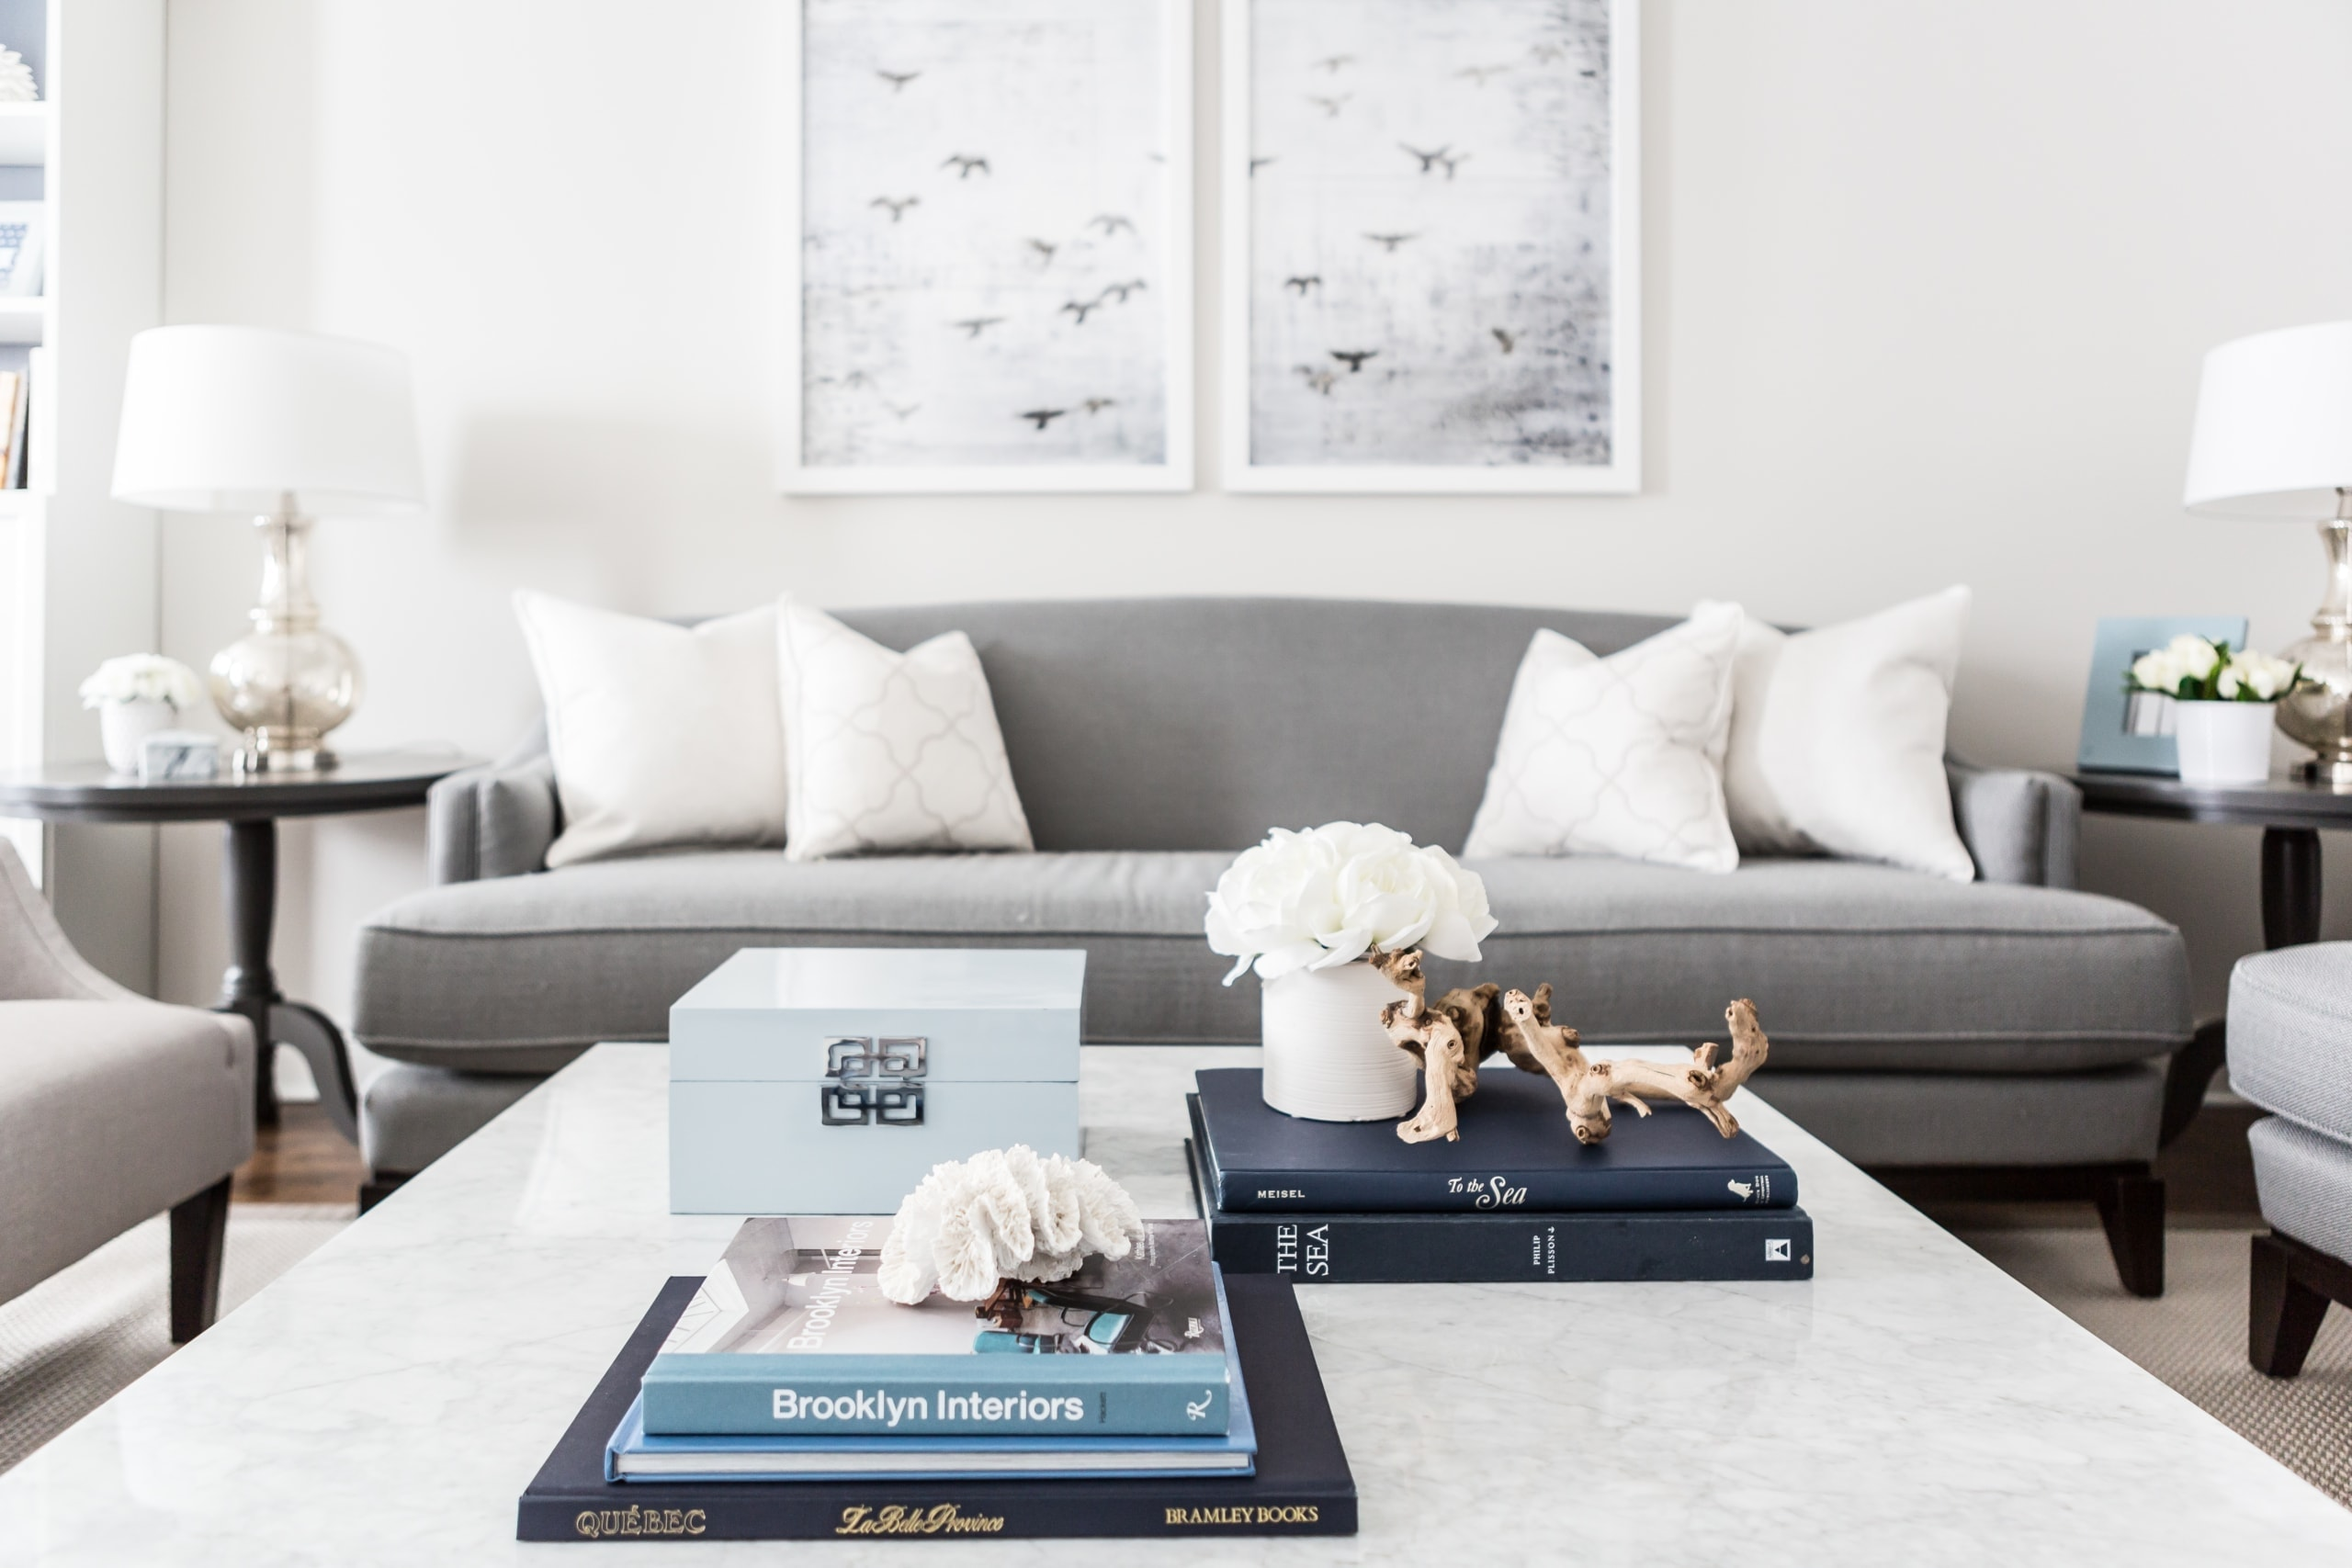 Bright living room with a focus on the decoration on the table